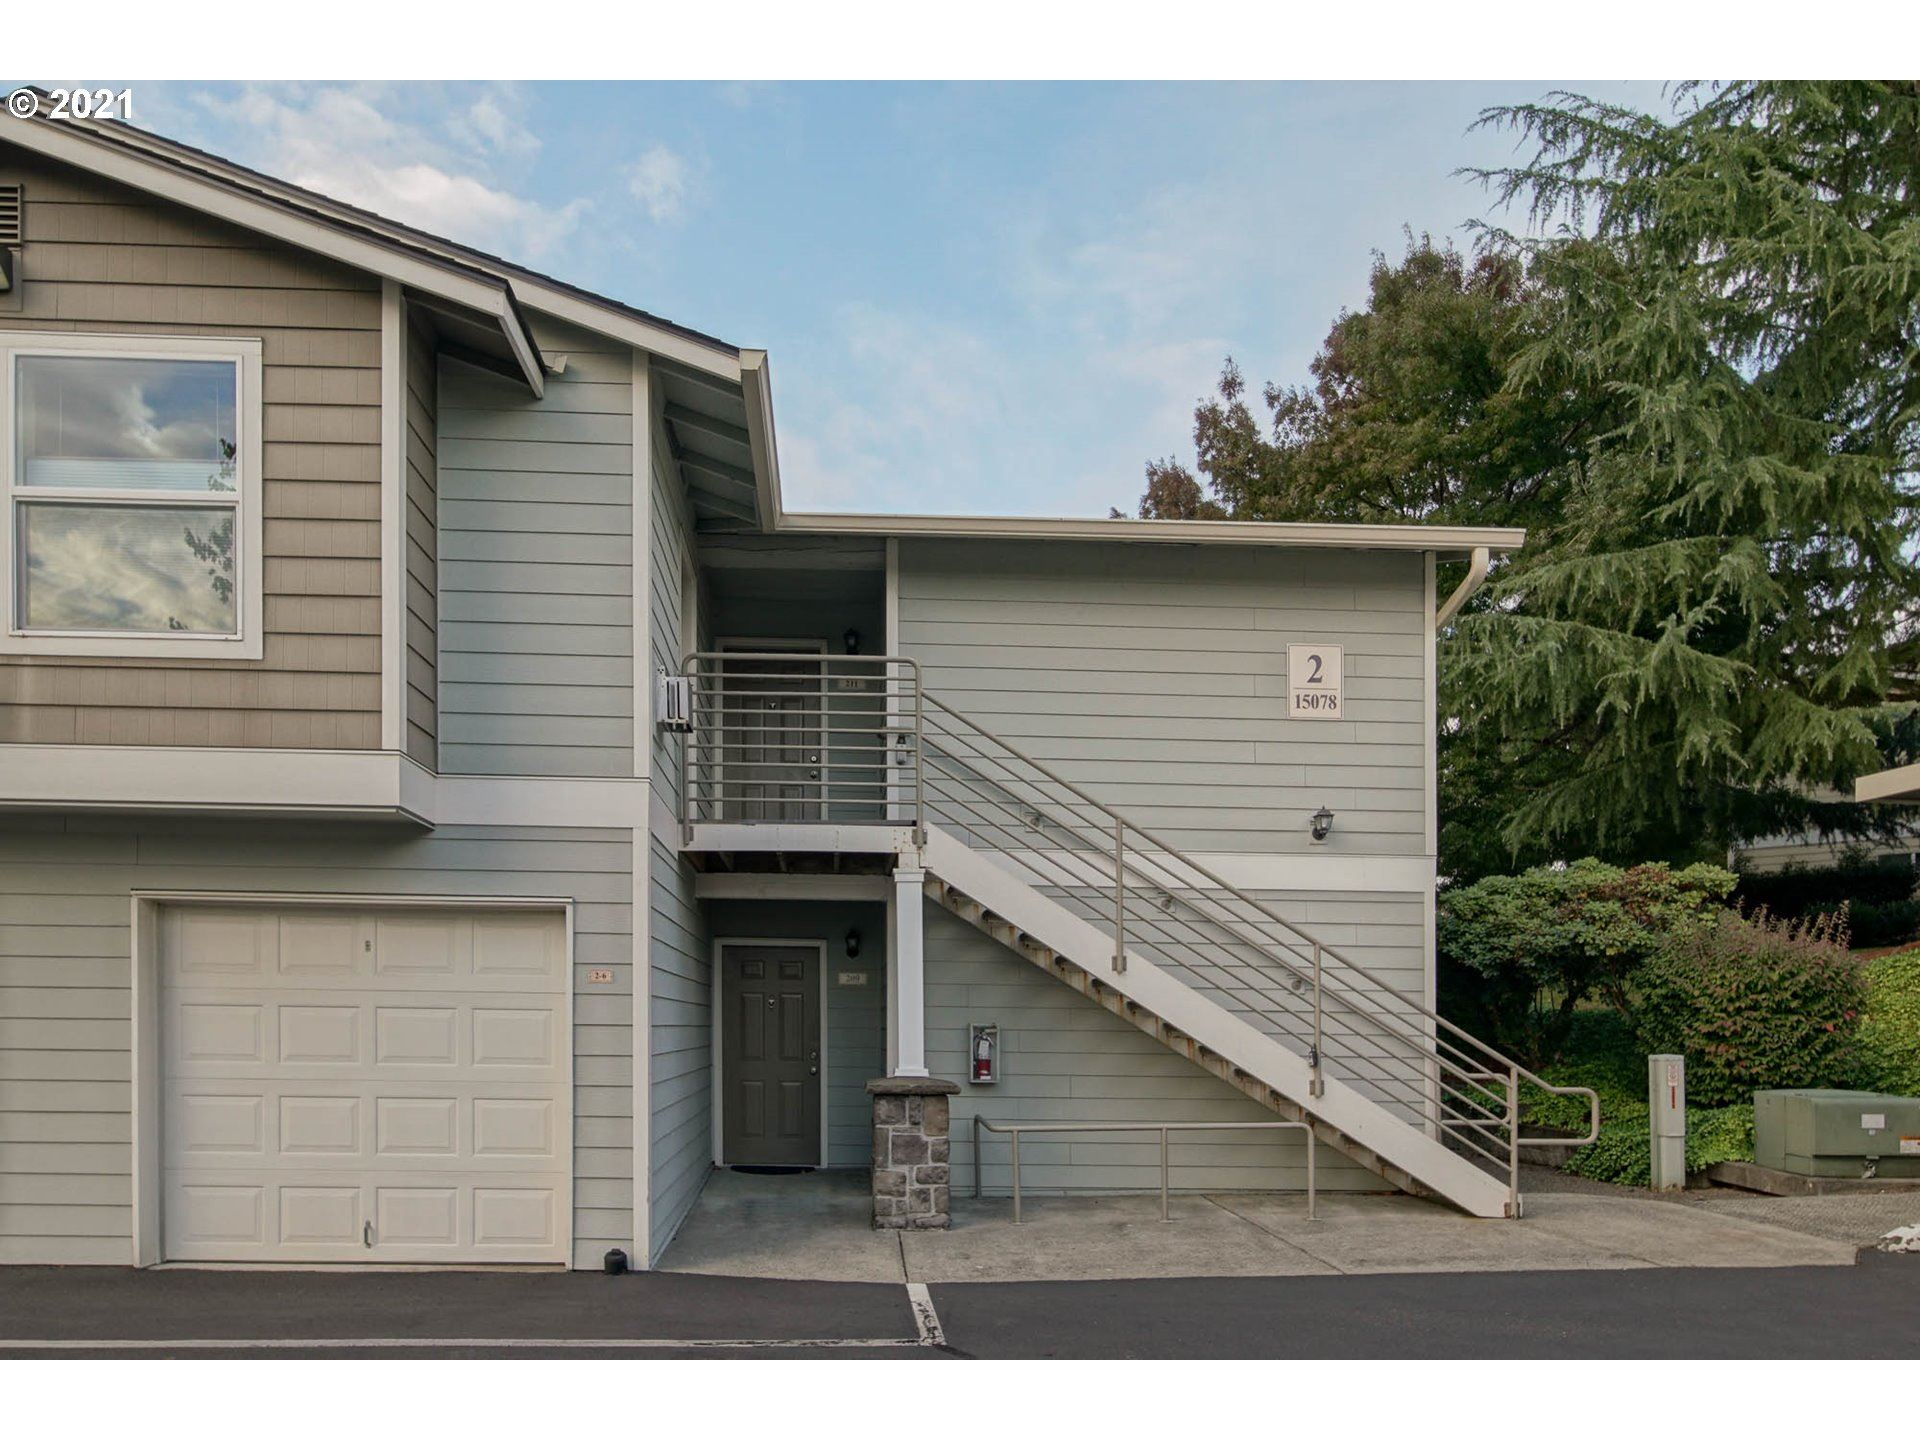 Photo of 15078 NW CENTRAL DR #211, Portland, OR 97229 (MLS # 21647706)